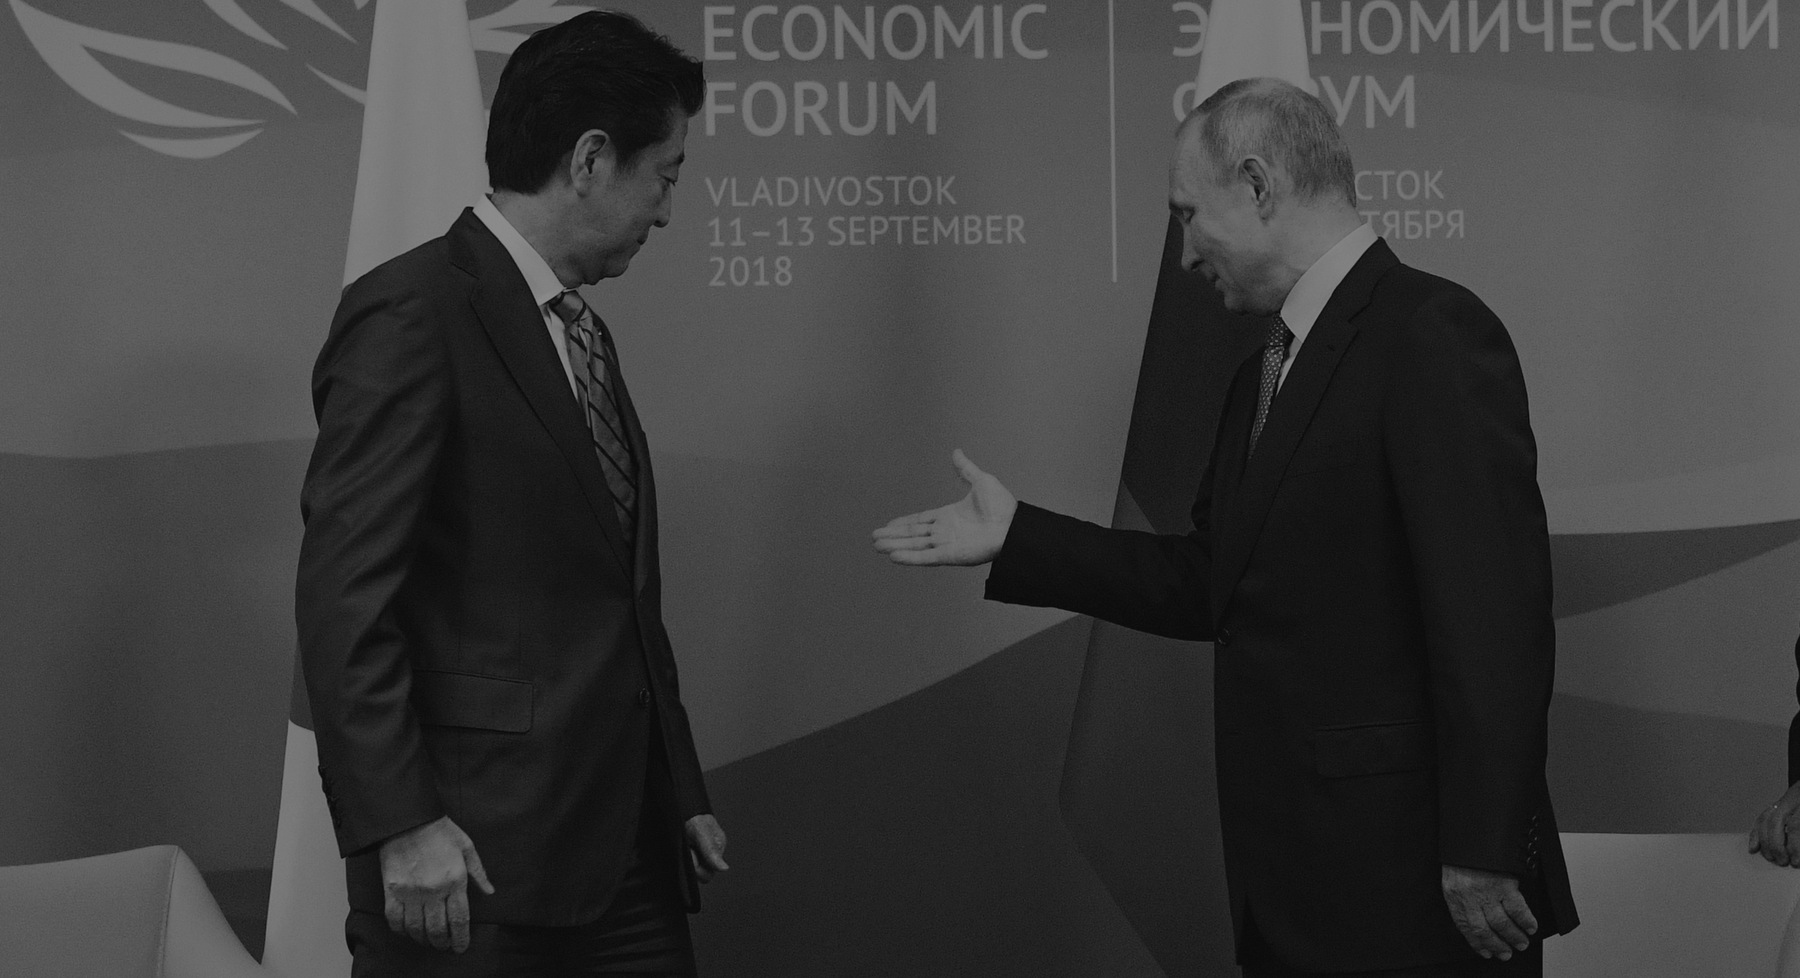 Shinzo Abe's Legacy: How to Further Develop Economic Ties Between Russia and Japan